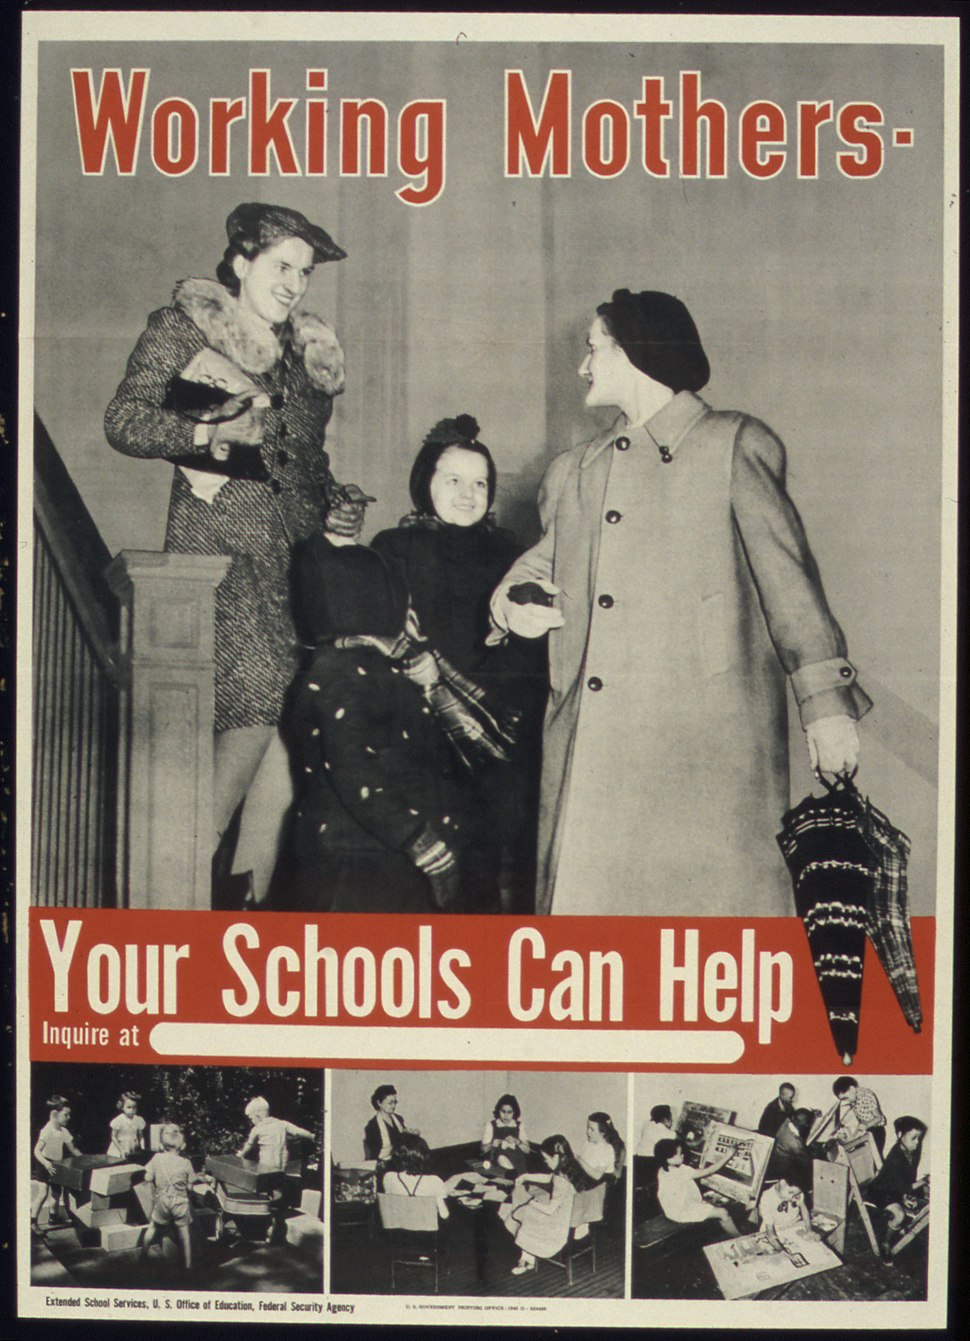 """WORKING MOTHERS - YOUR SCHOOLS CAN HELP"" - NARA - 516193"